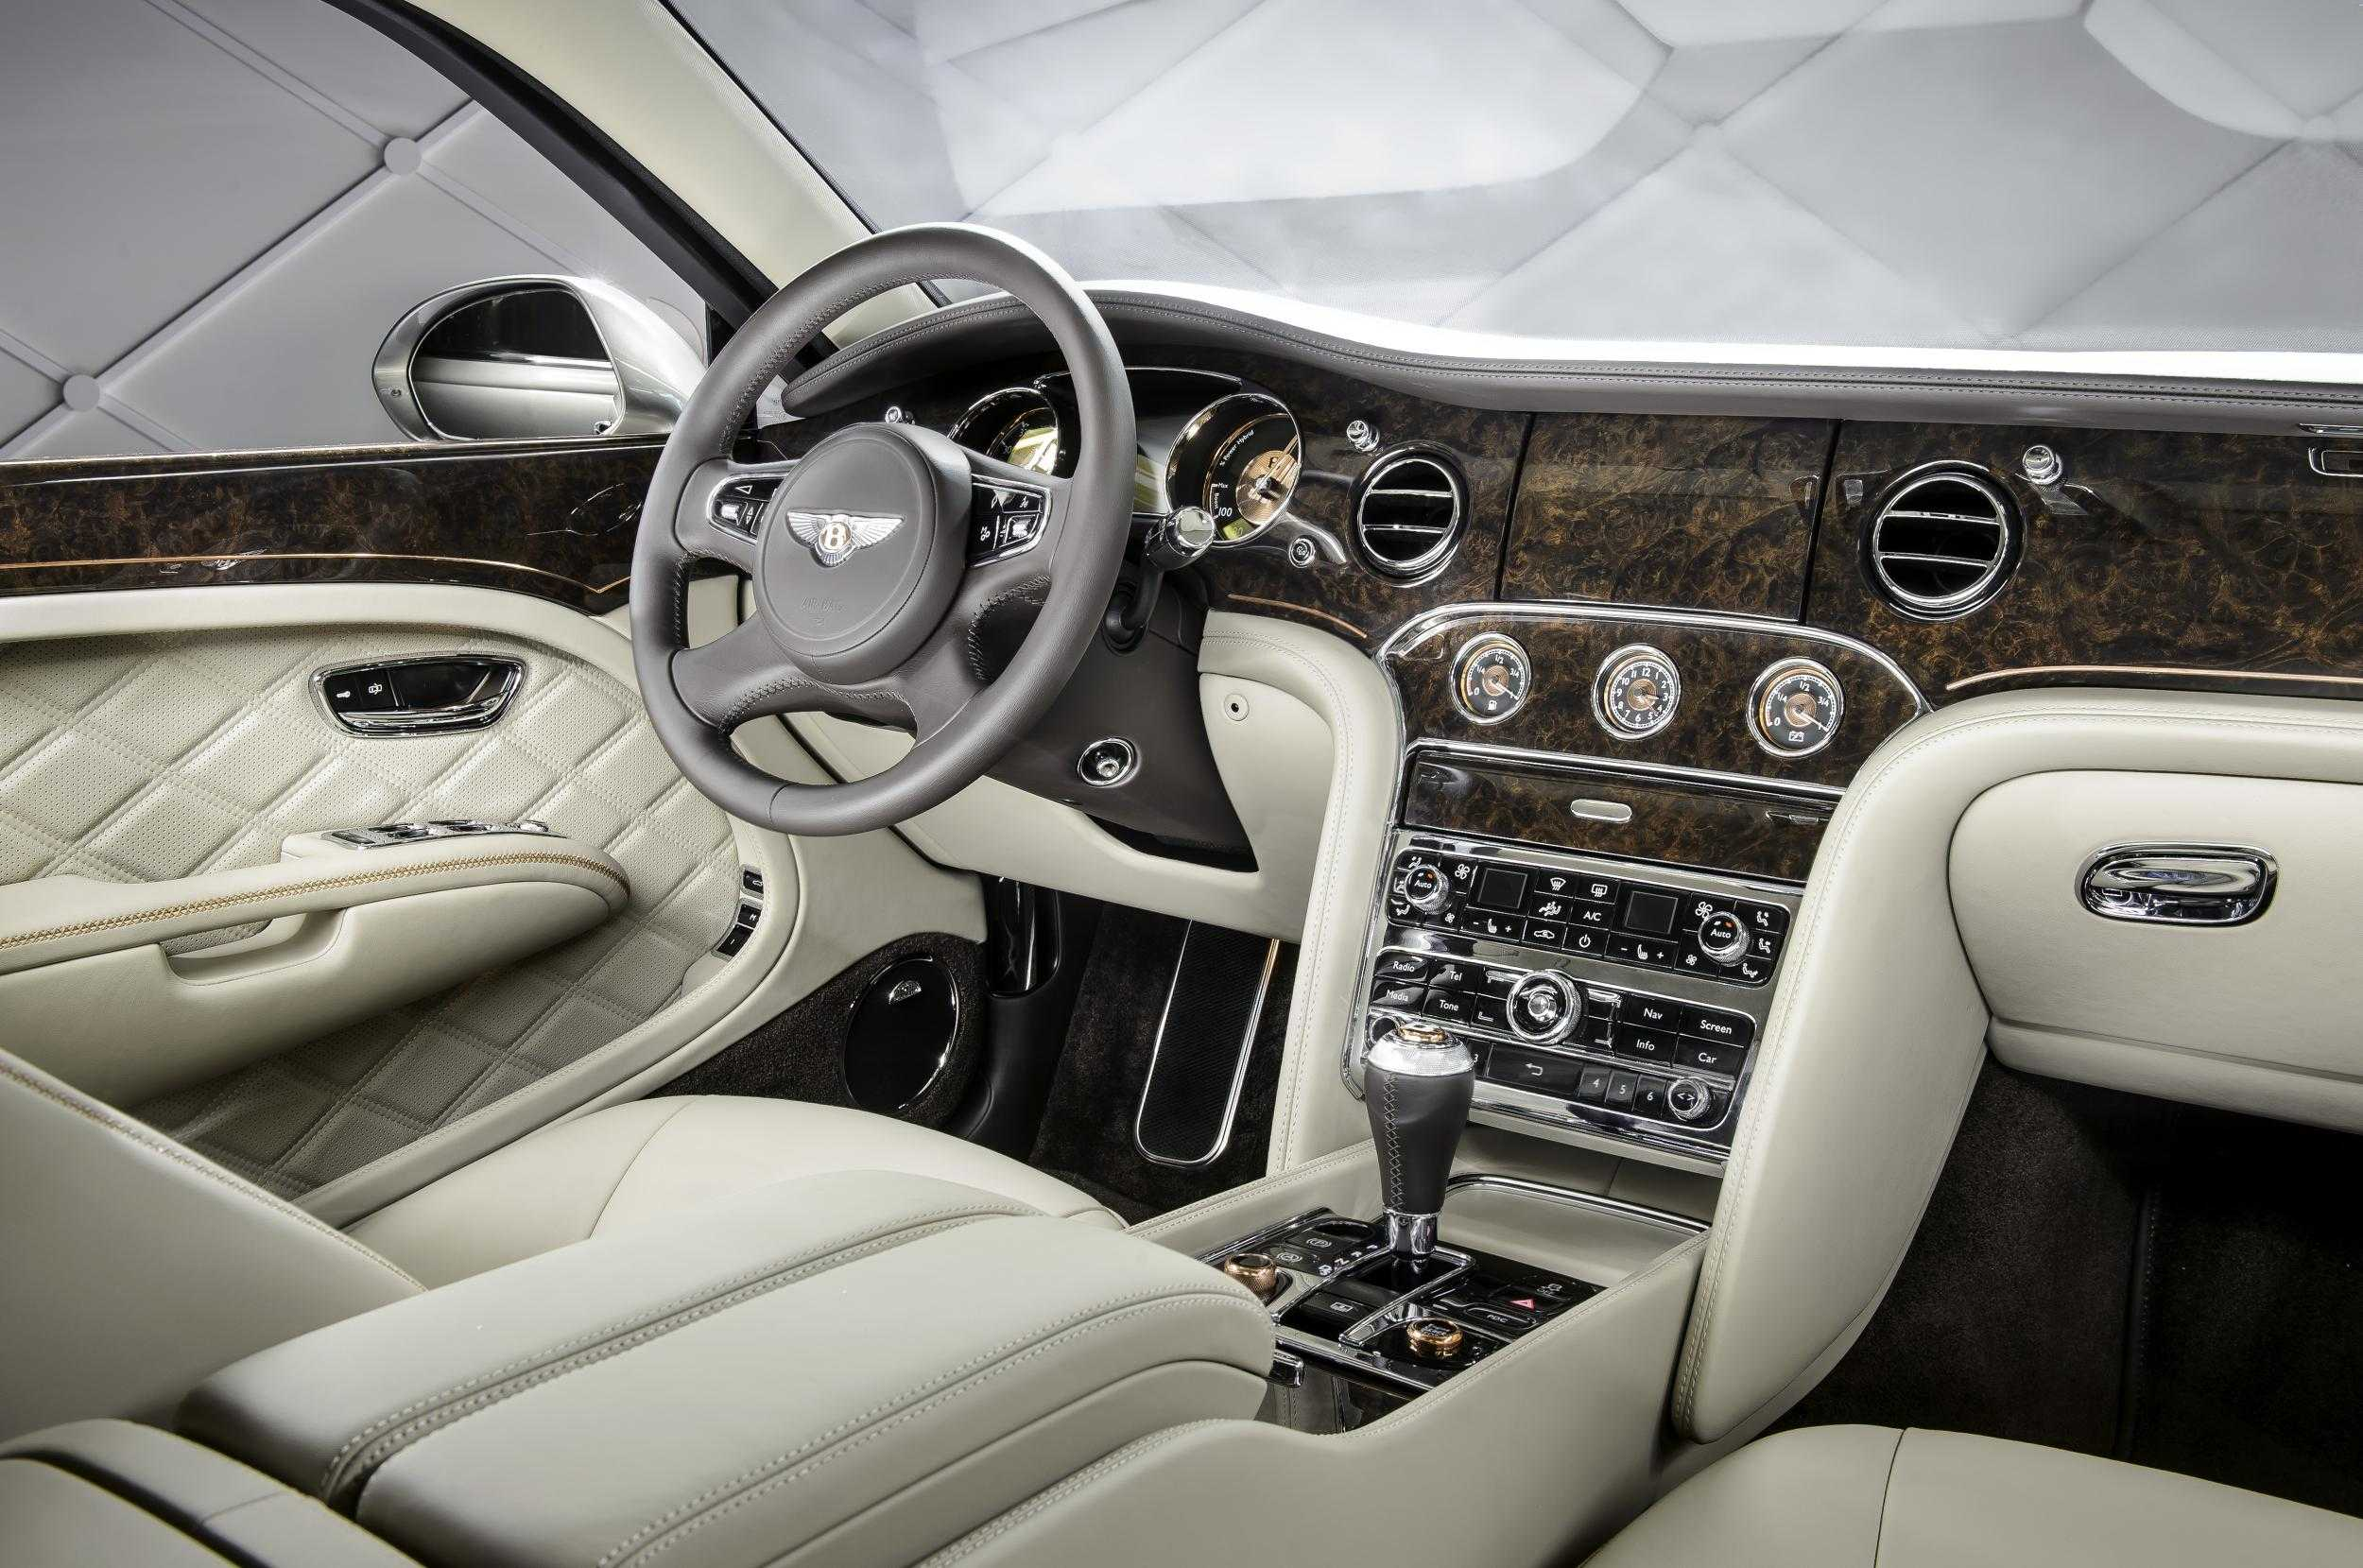 luxury combines with motors s bentley inline tech cars gt looks continental new story classic